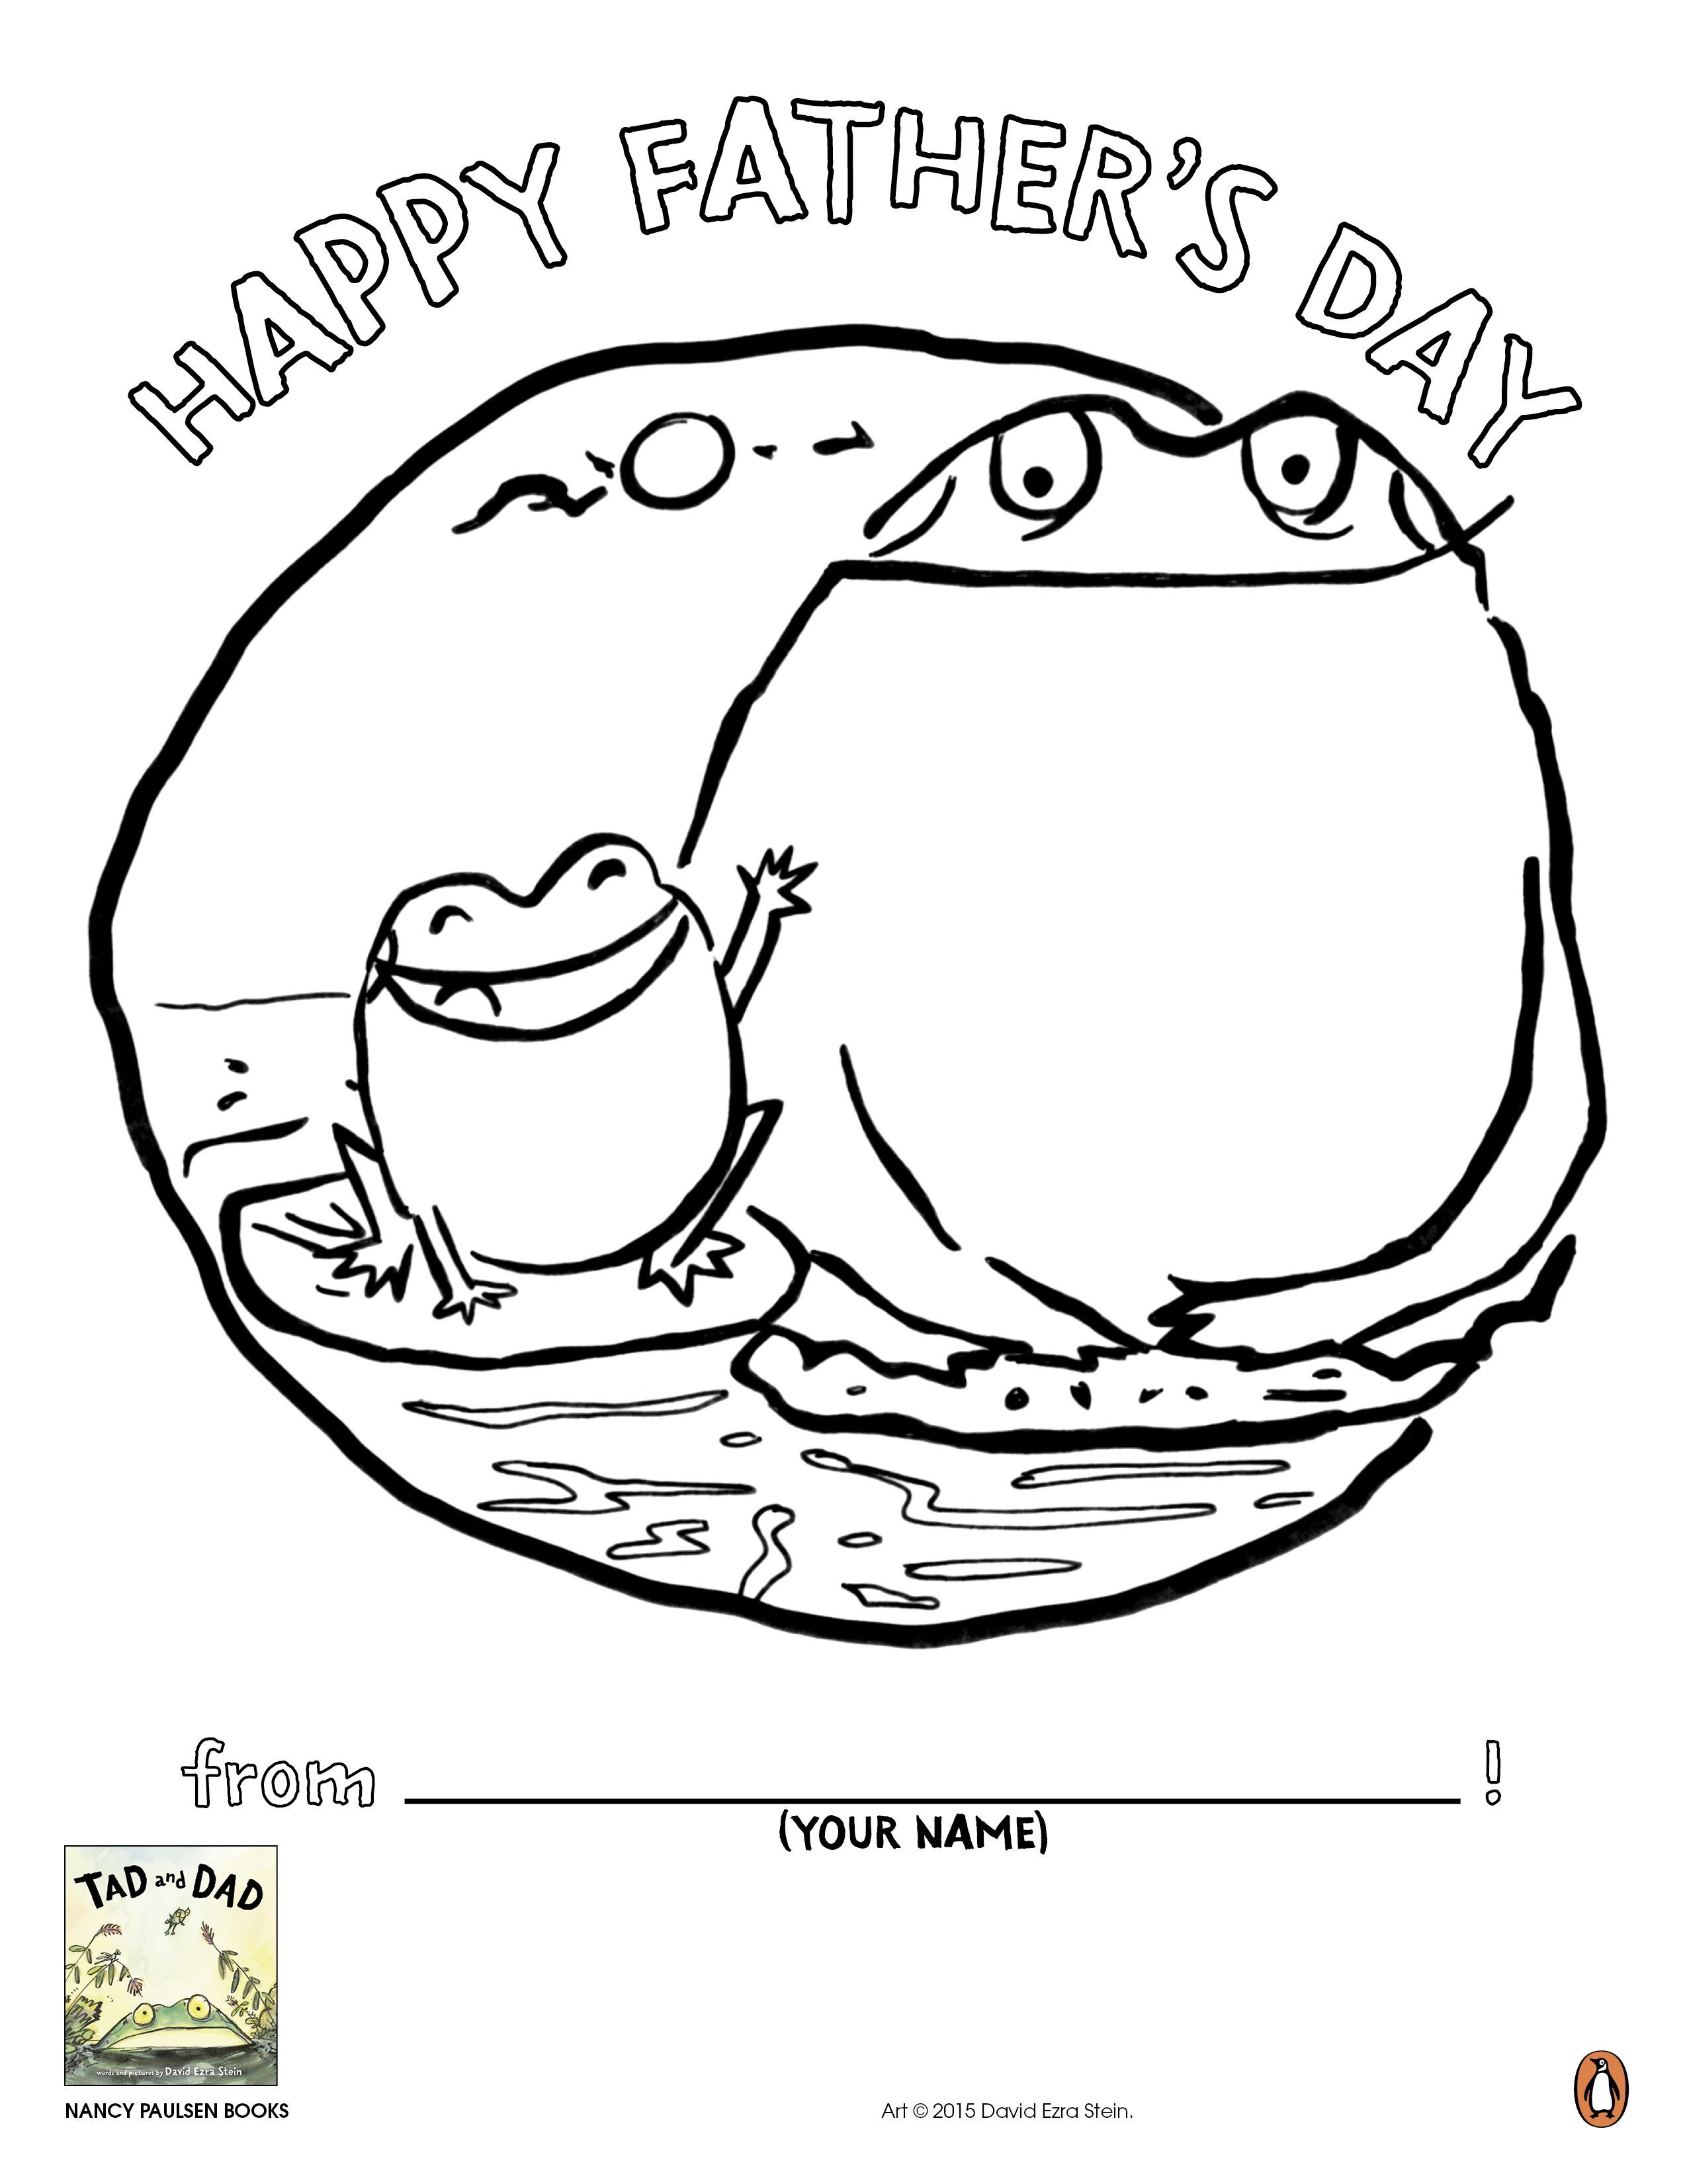 Let Your Little Tadpoles Print And Color This Adorable